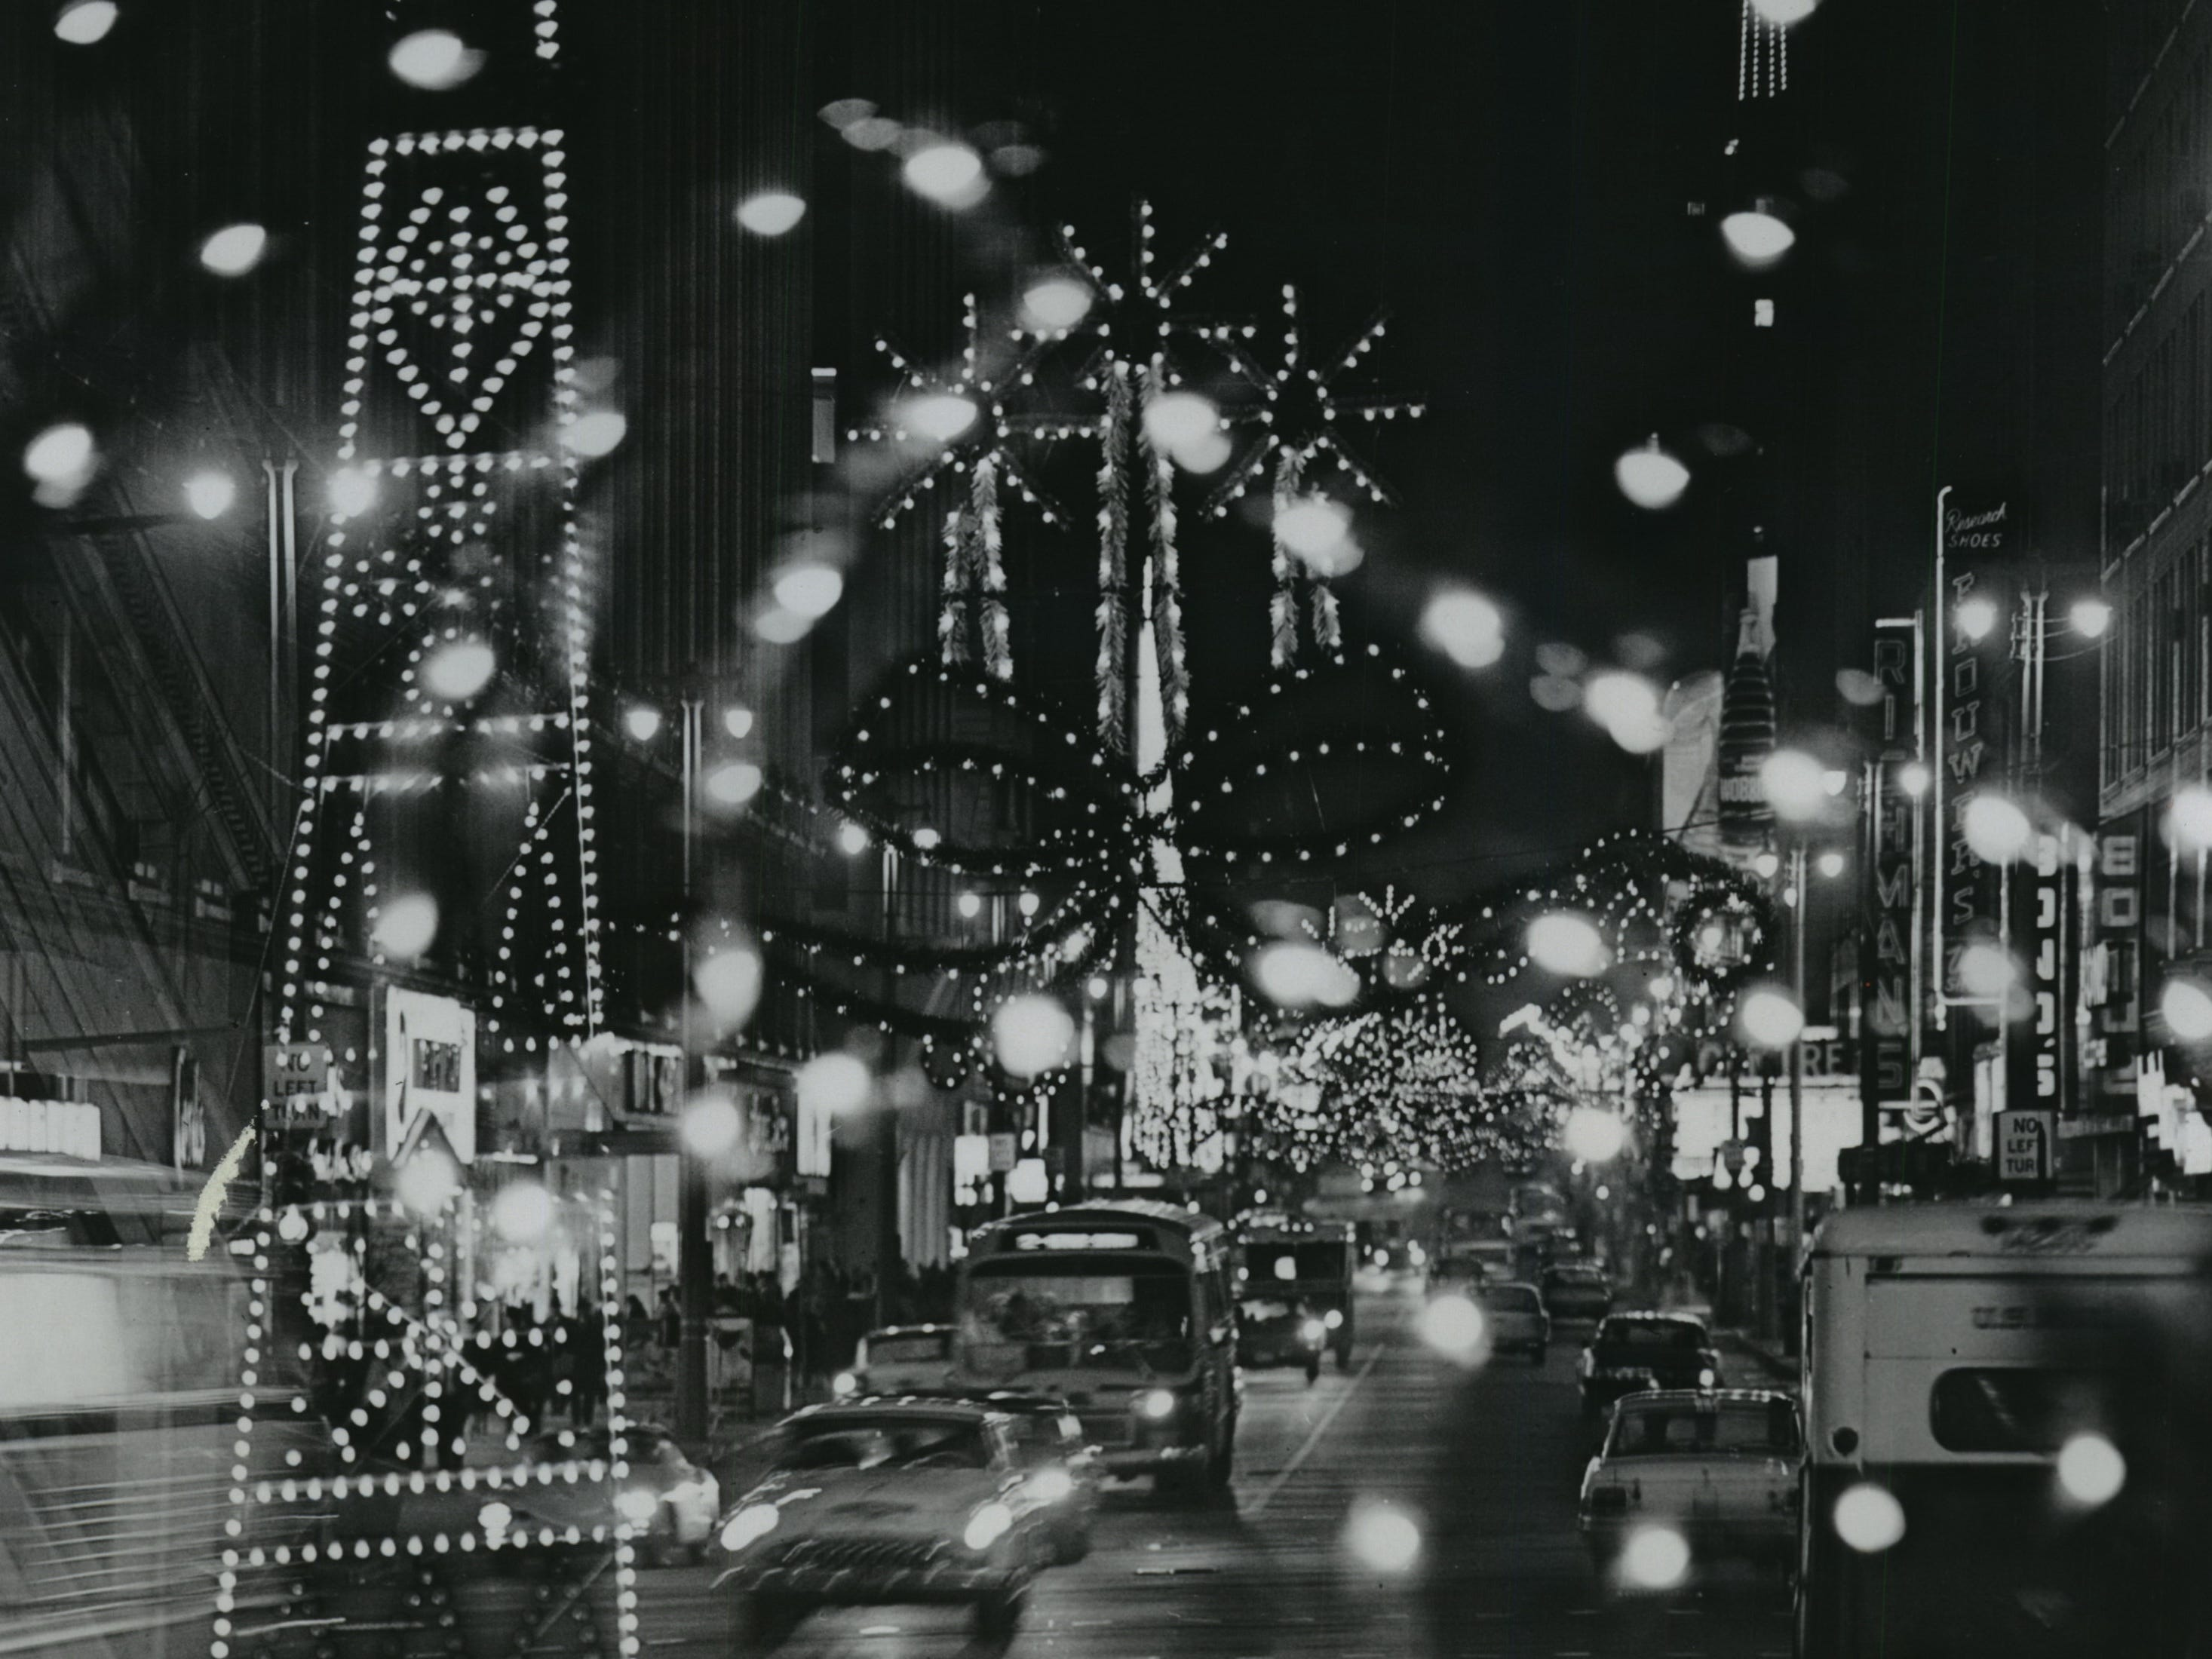 Wisconsin Avenue's lights get a double-exposure treatment in this photo taken during the Christmas shopping season in 1968.